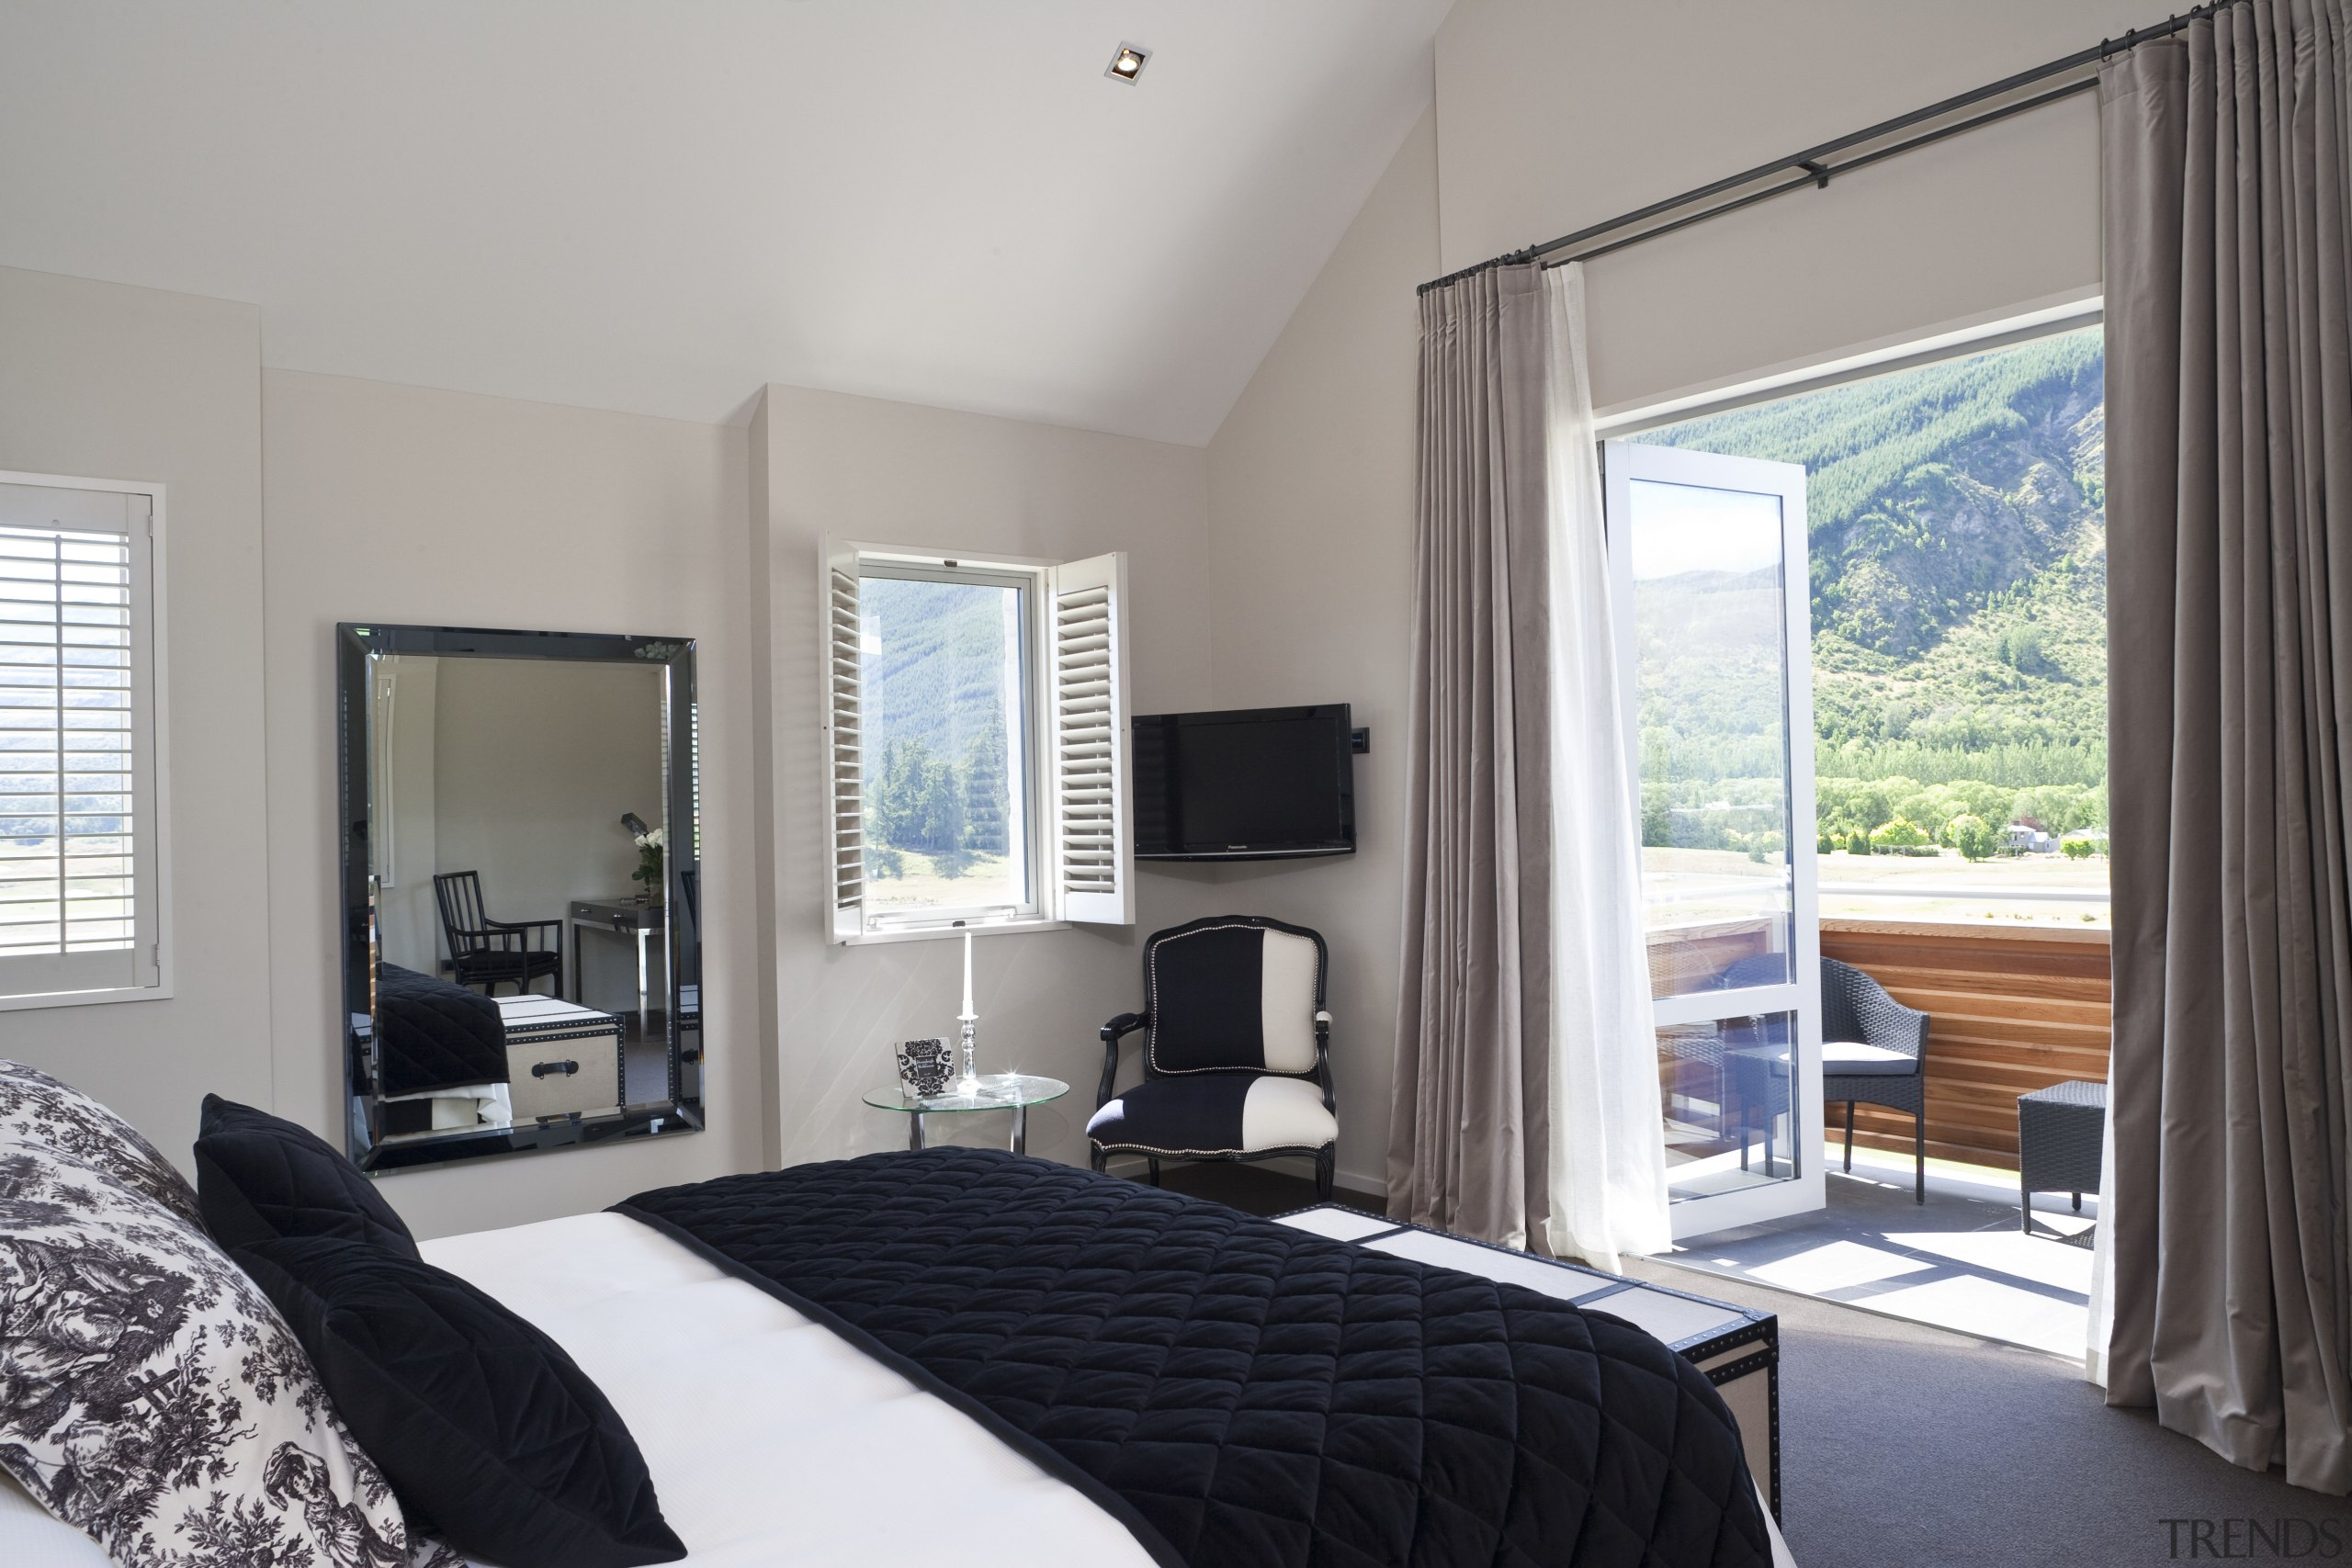 View Of Bedroom Featuring Bed With White Linen, Black Headboard,